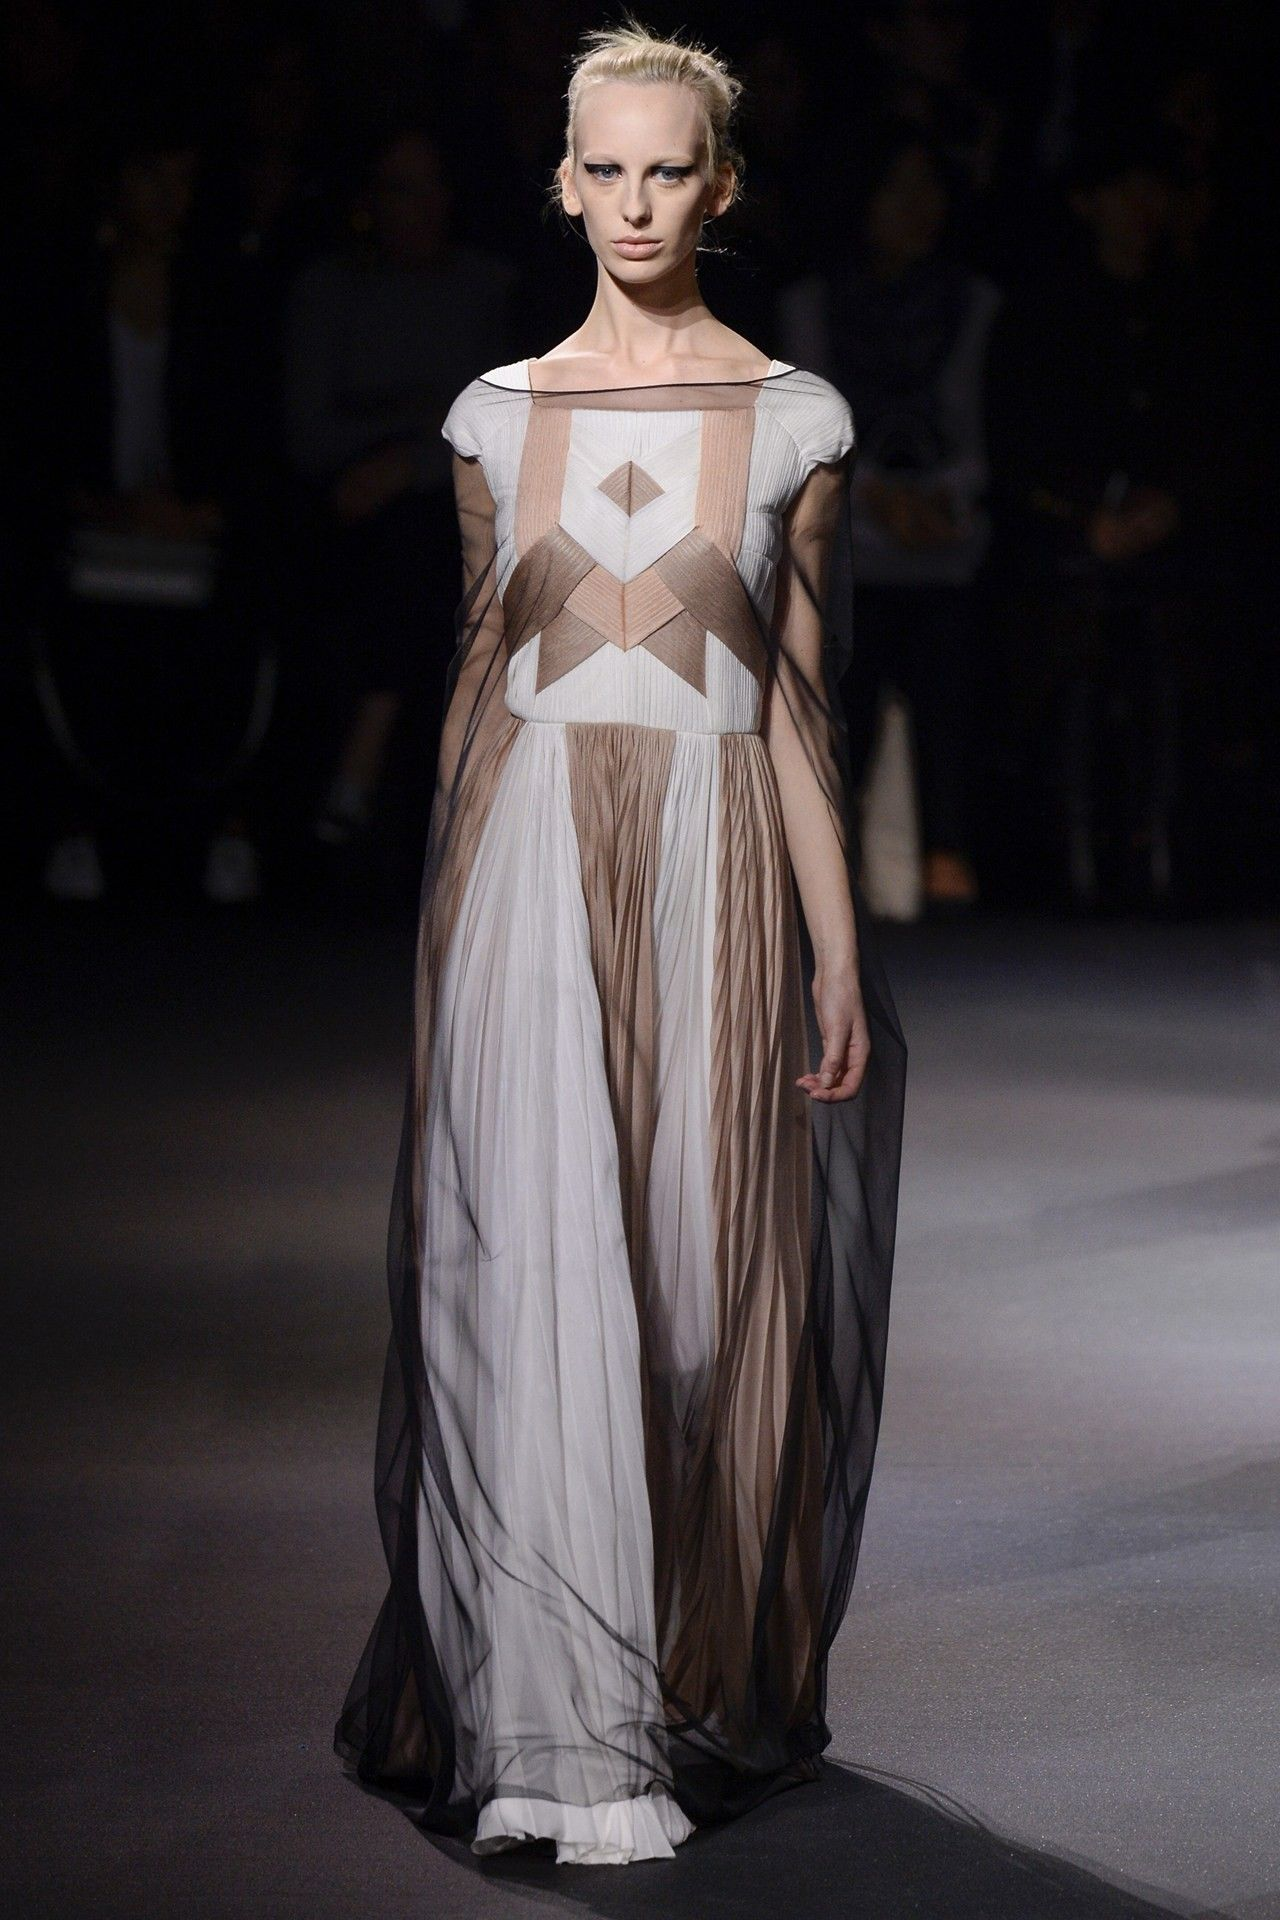 Vionnet - Ethereal eveningwear brings the heritage brand to life